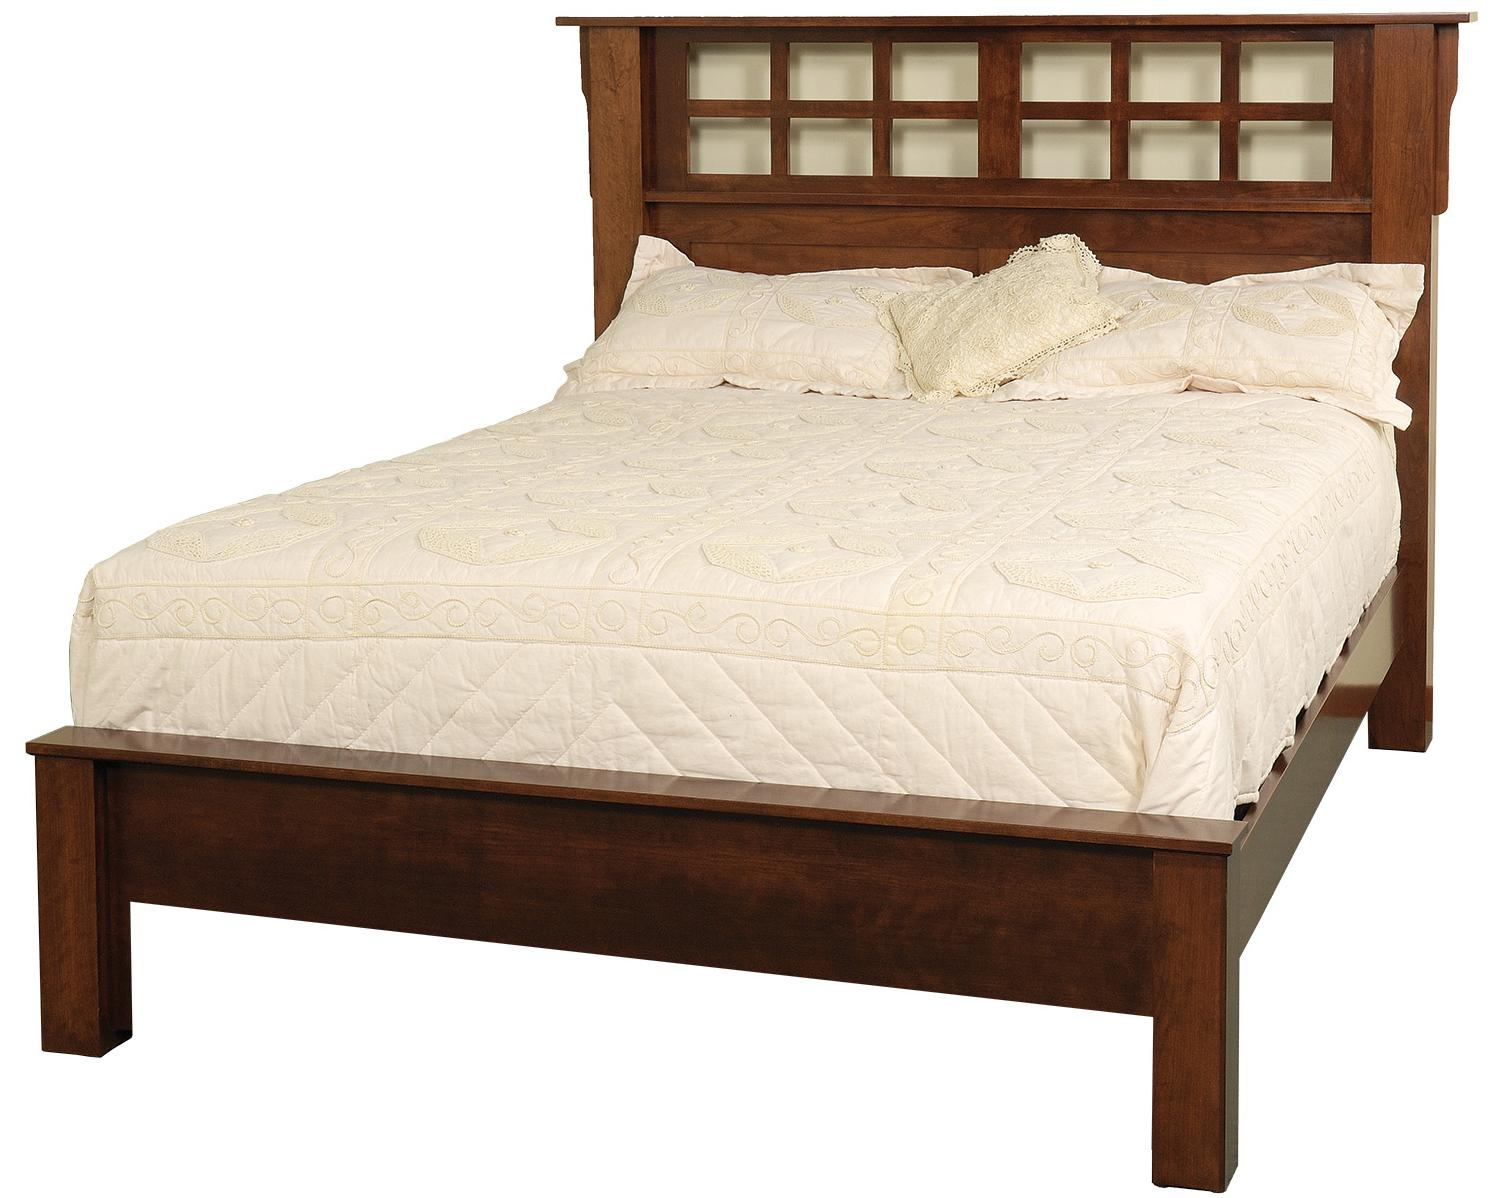 Daniel 39 S Amish Arts And Crafts California King Solid Wood Frame Bed With Low Profile Footboard